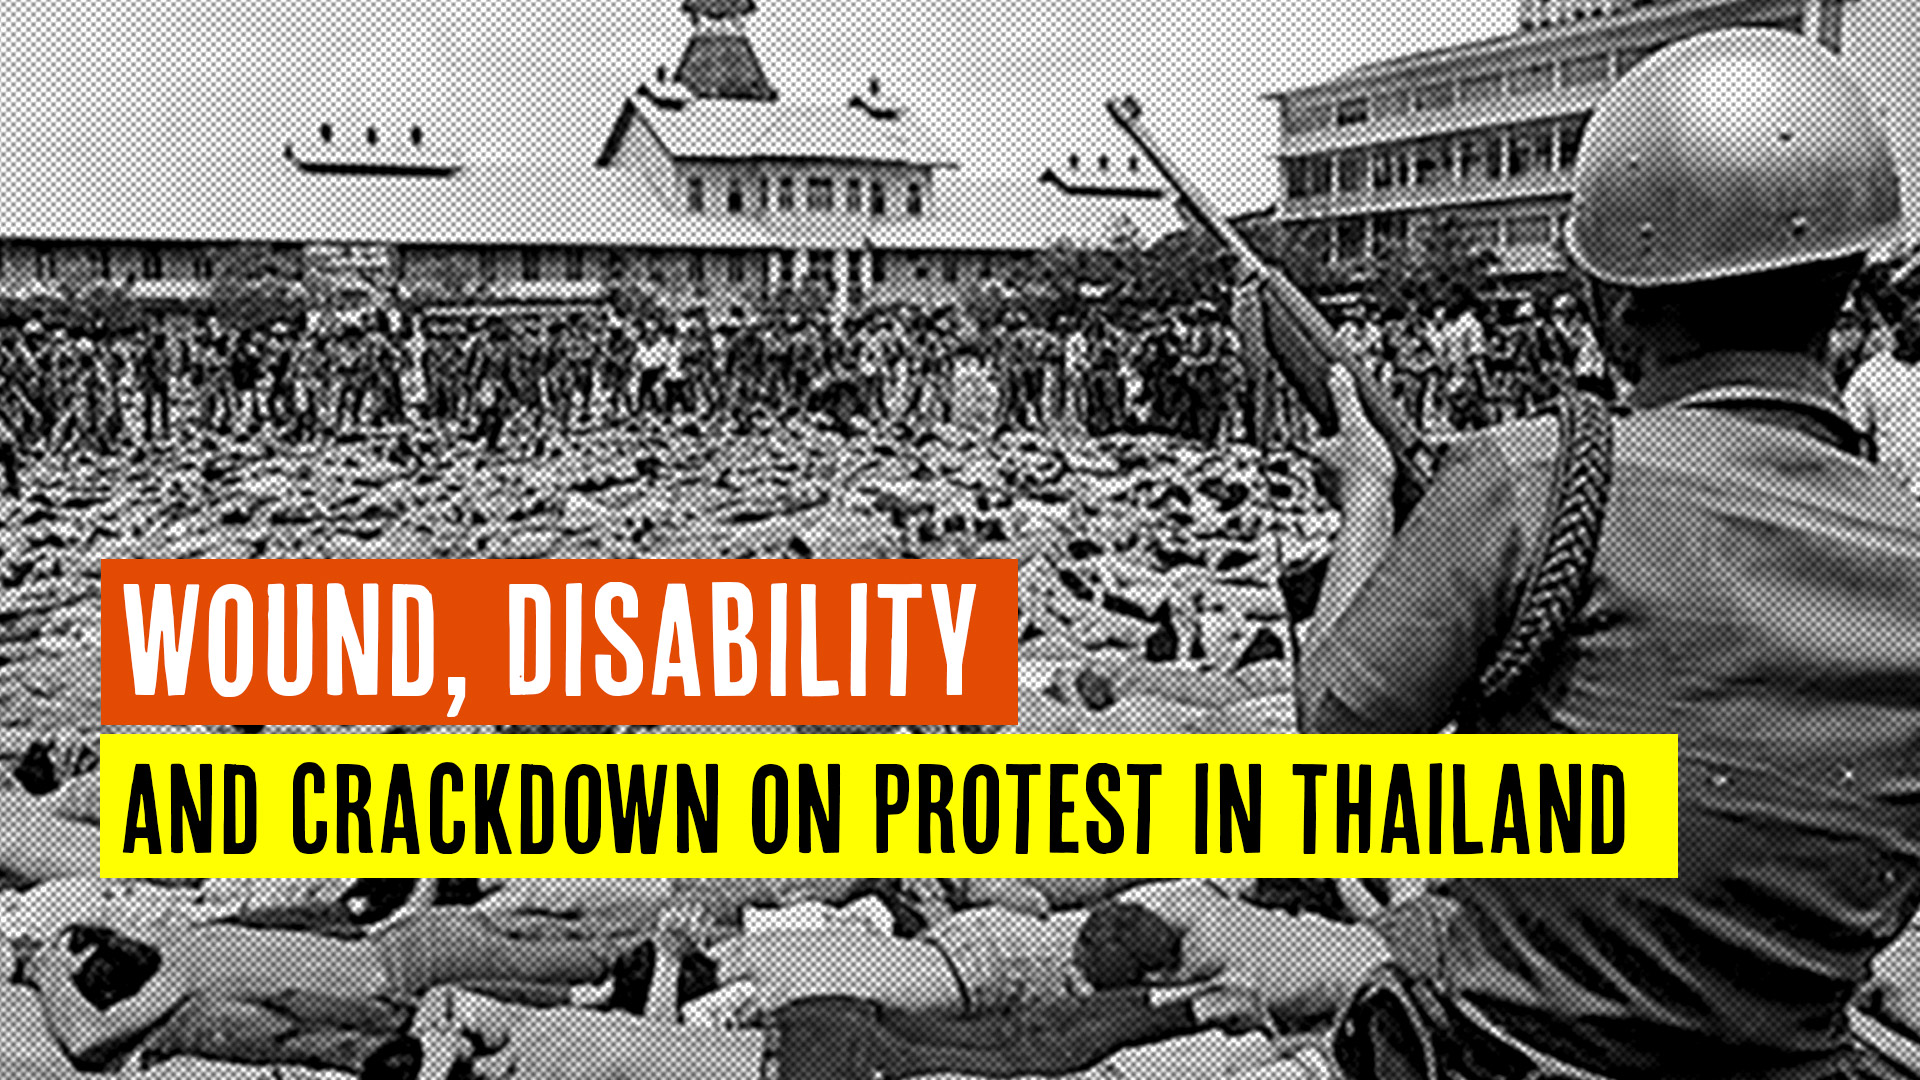 Wound, Disability and Crackdown on Protest in Thailand